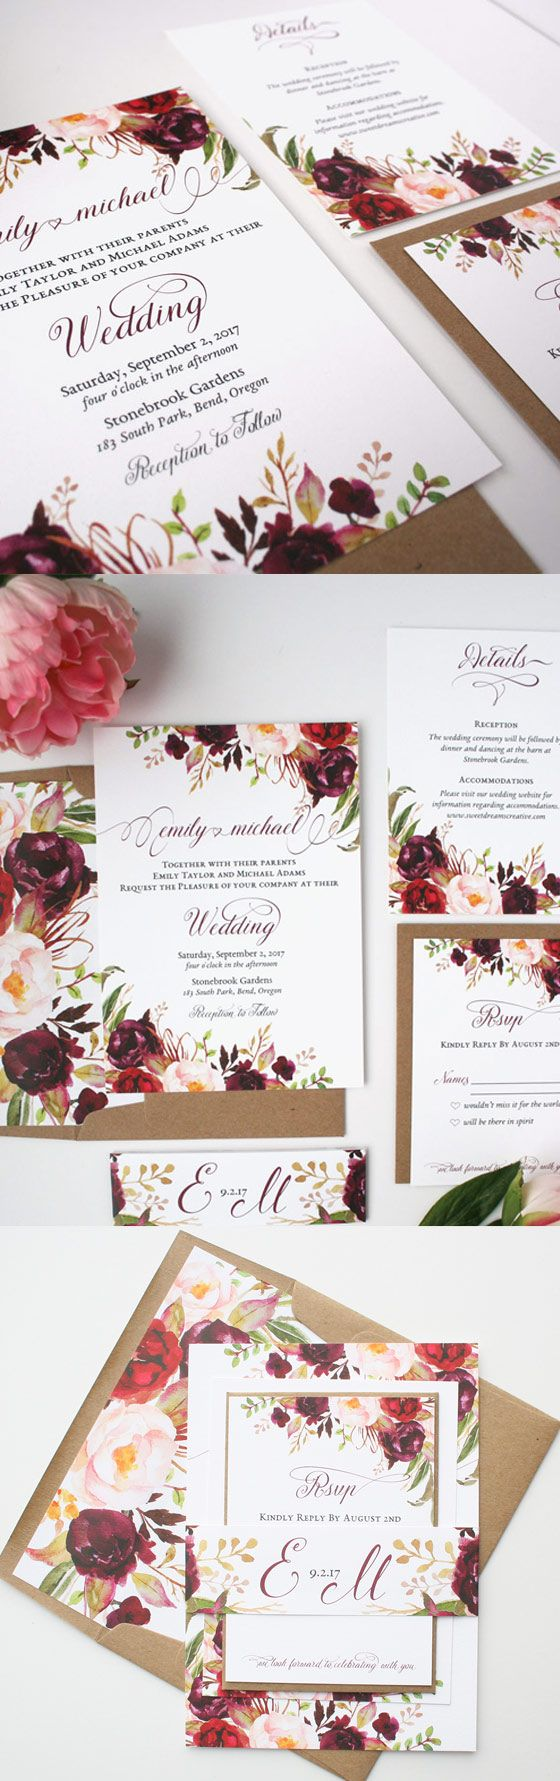 Fall Wedding Invites - Arabia Weddings